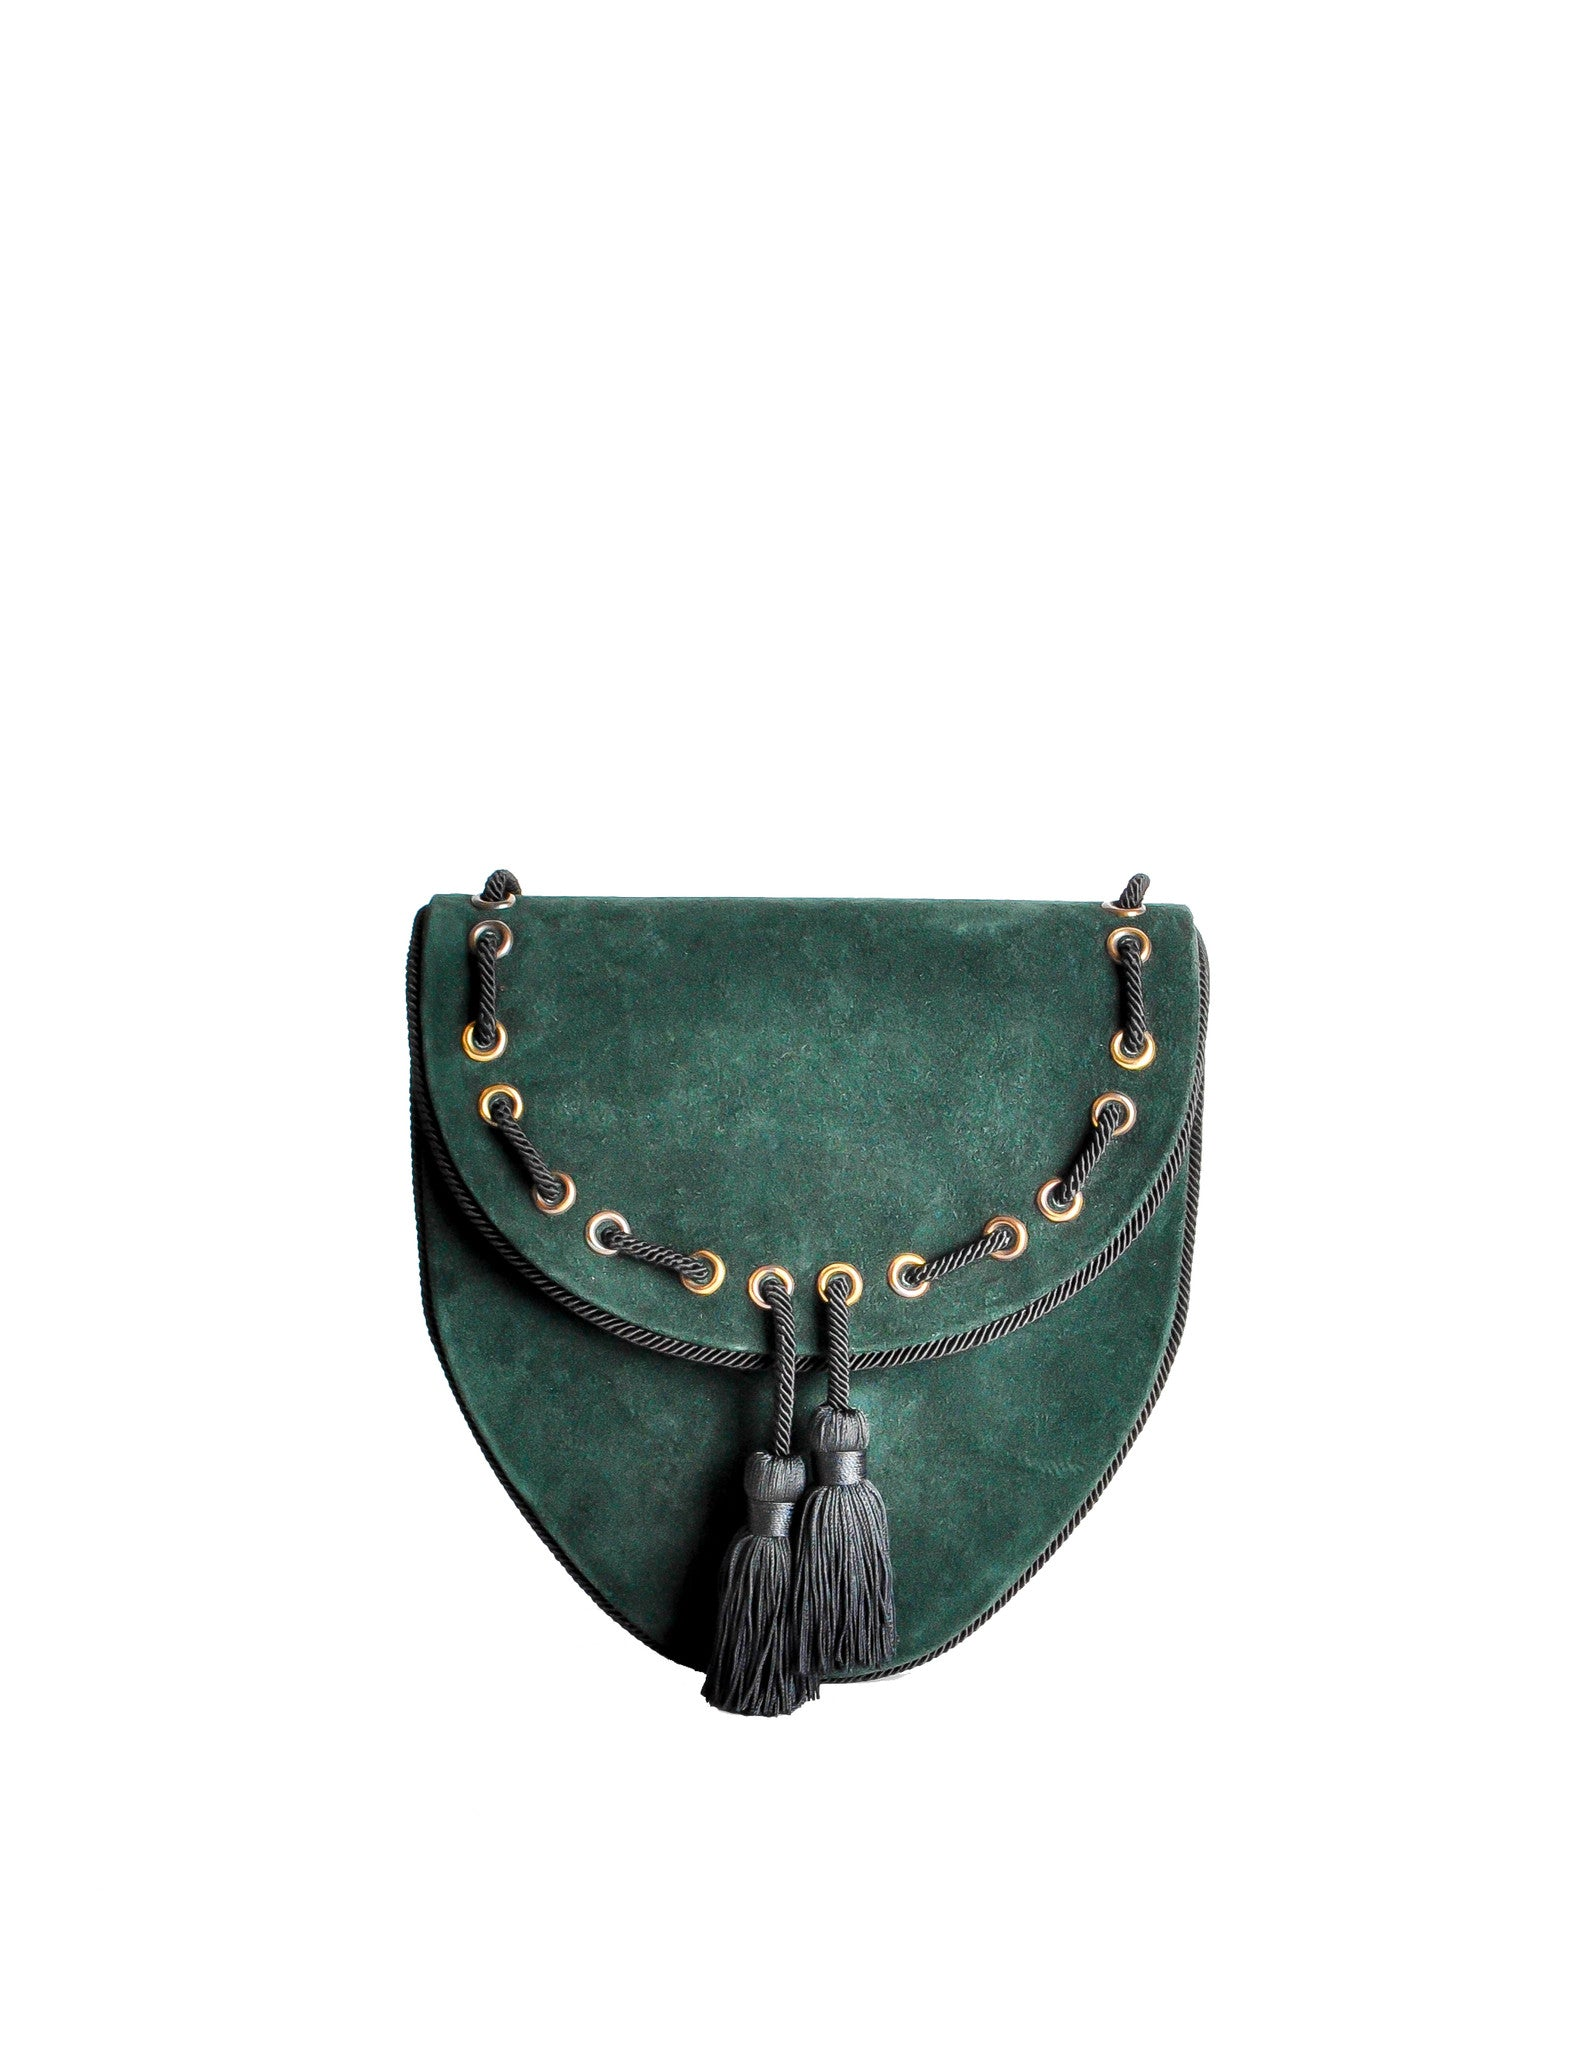 Yves Saint Laurent Vintage Green Suede Crossbody Bag - Amarcord Vintage Fashion  - 1